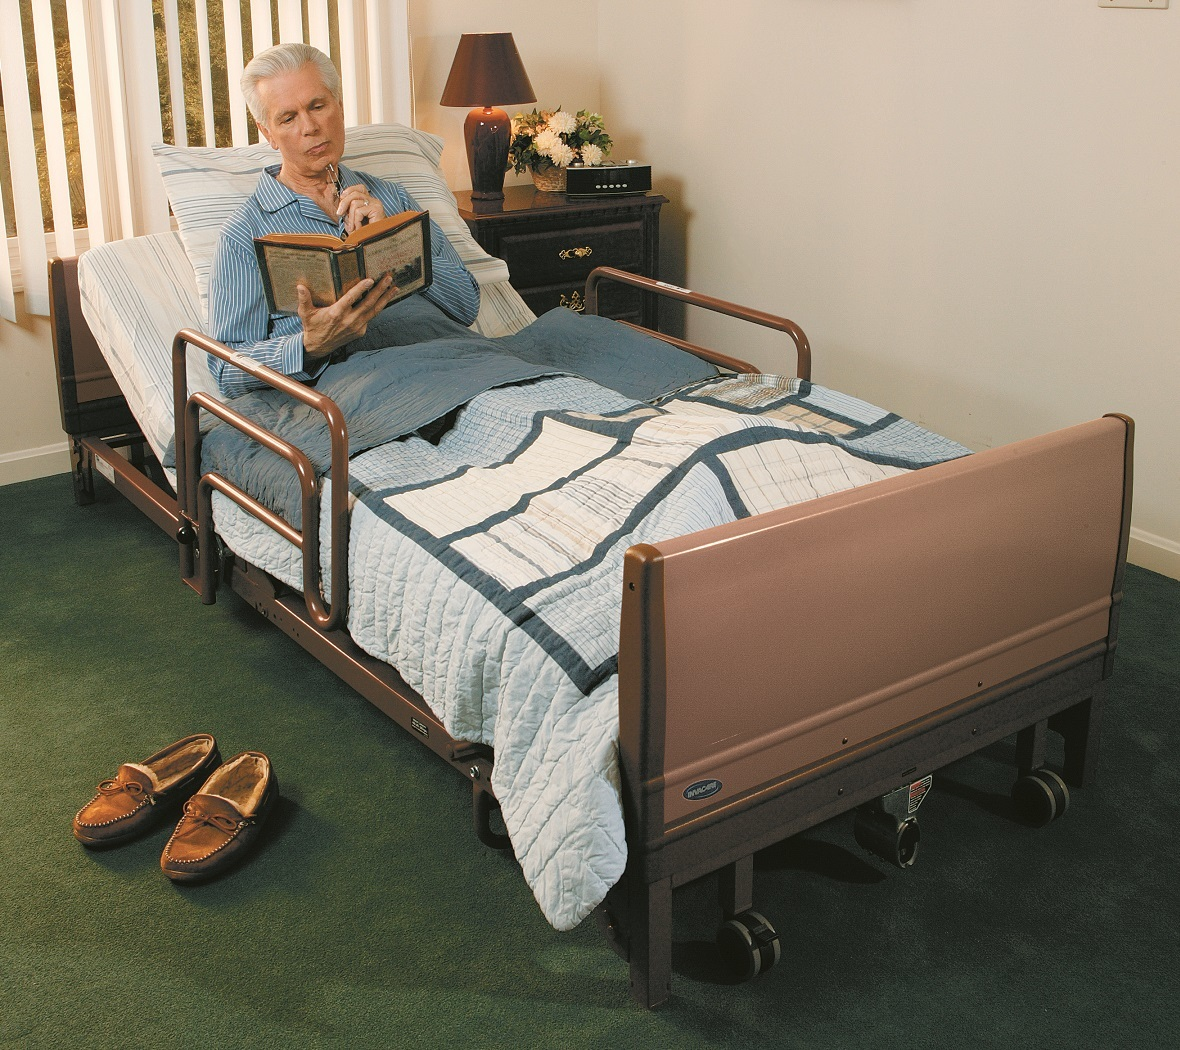 Hospital Bed Types Which Is Best For Bedridden Seniors And Disabled